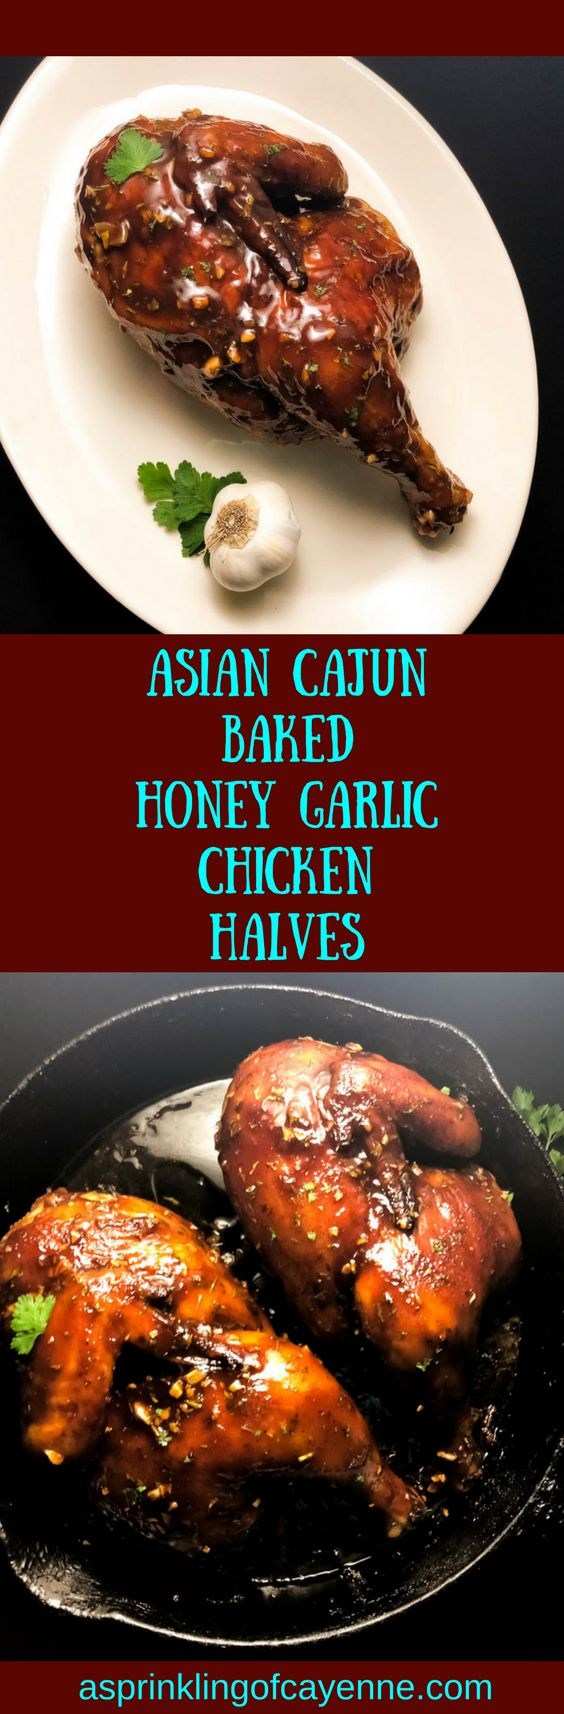 Asian Cajun Baked Honey Garlic Chicken Halves. An easy gluten free, Paleo-friendly chicken recipe with a super juicy inside, and ultra-crispy outside. Baked in cast iron with an out of this world Cajun Asian fusion sauce. https://asprinklingofcayenne.com/asian-cajun-baked-honey-garlic-chicken-halves/ #glutenfreerecipes #glutenfreechicken #honeygarlicchicken #bakedchicken #castiron #castirionchicken #asprinklingofcayenne #paleodiet